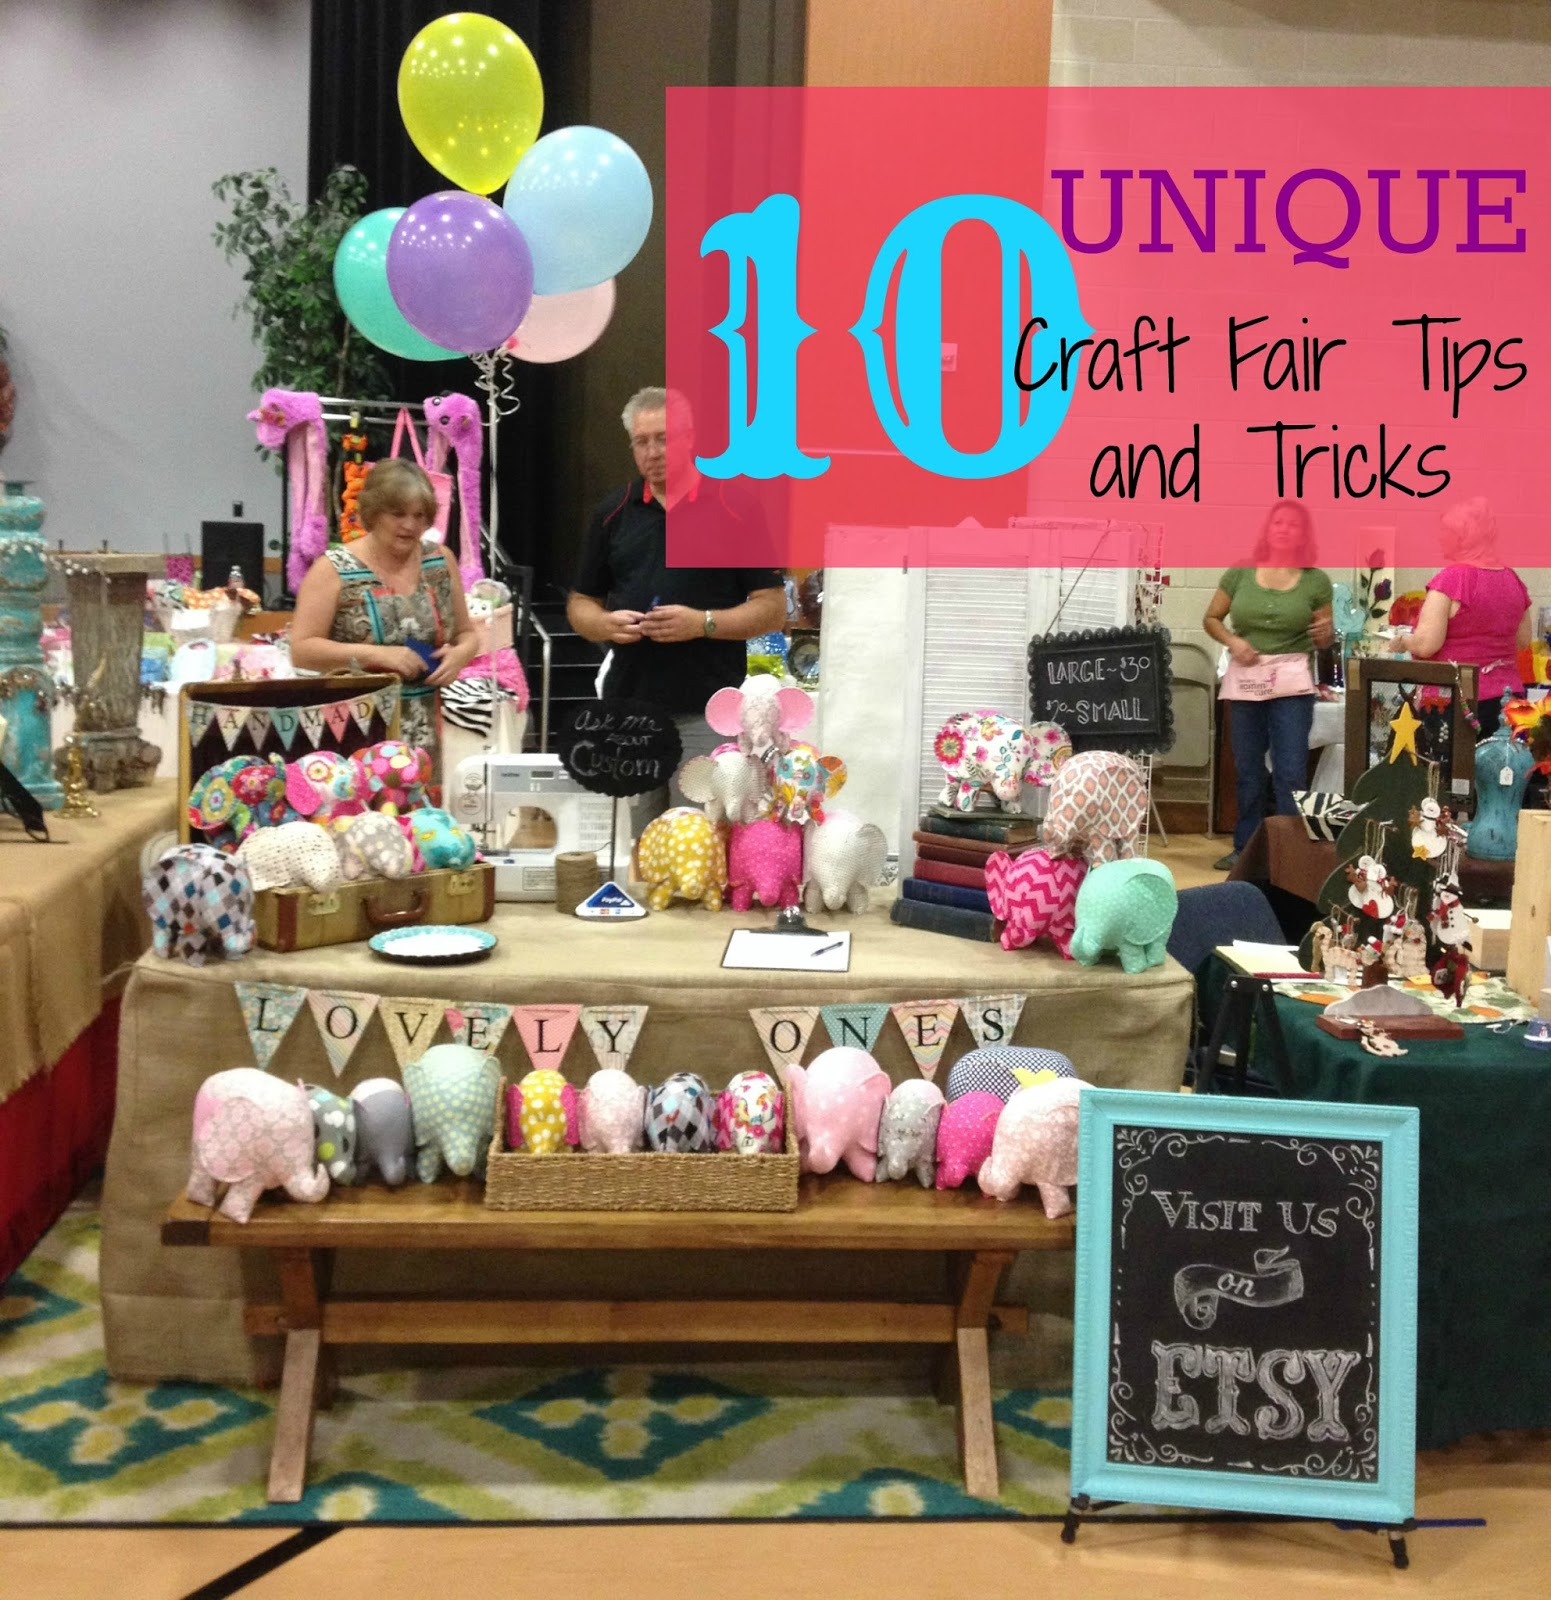 ideas for craft fairs 10 unique craft fair tips and tricks 4731